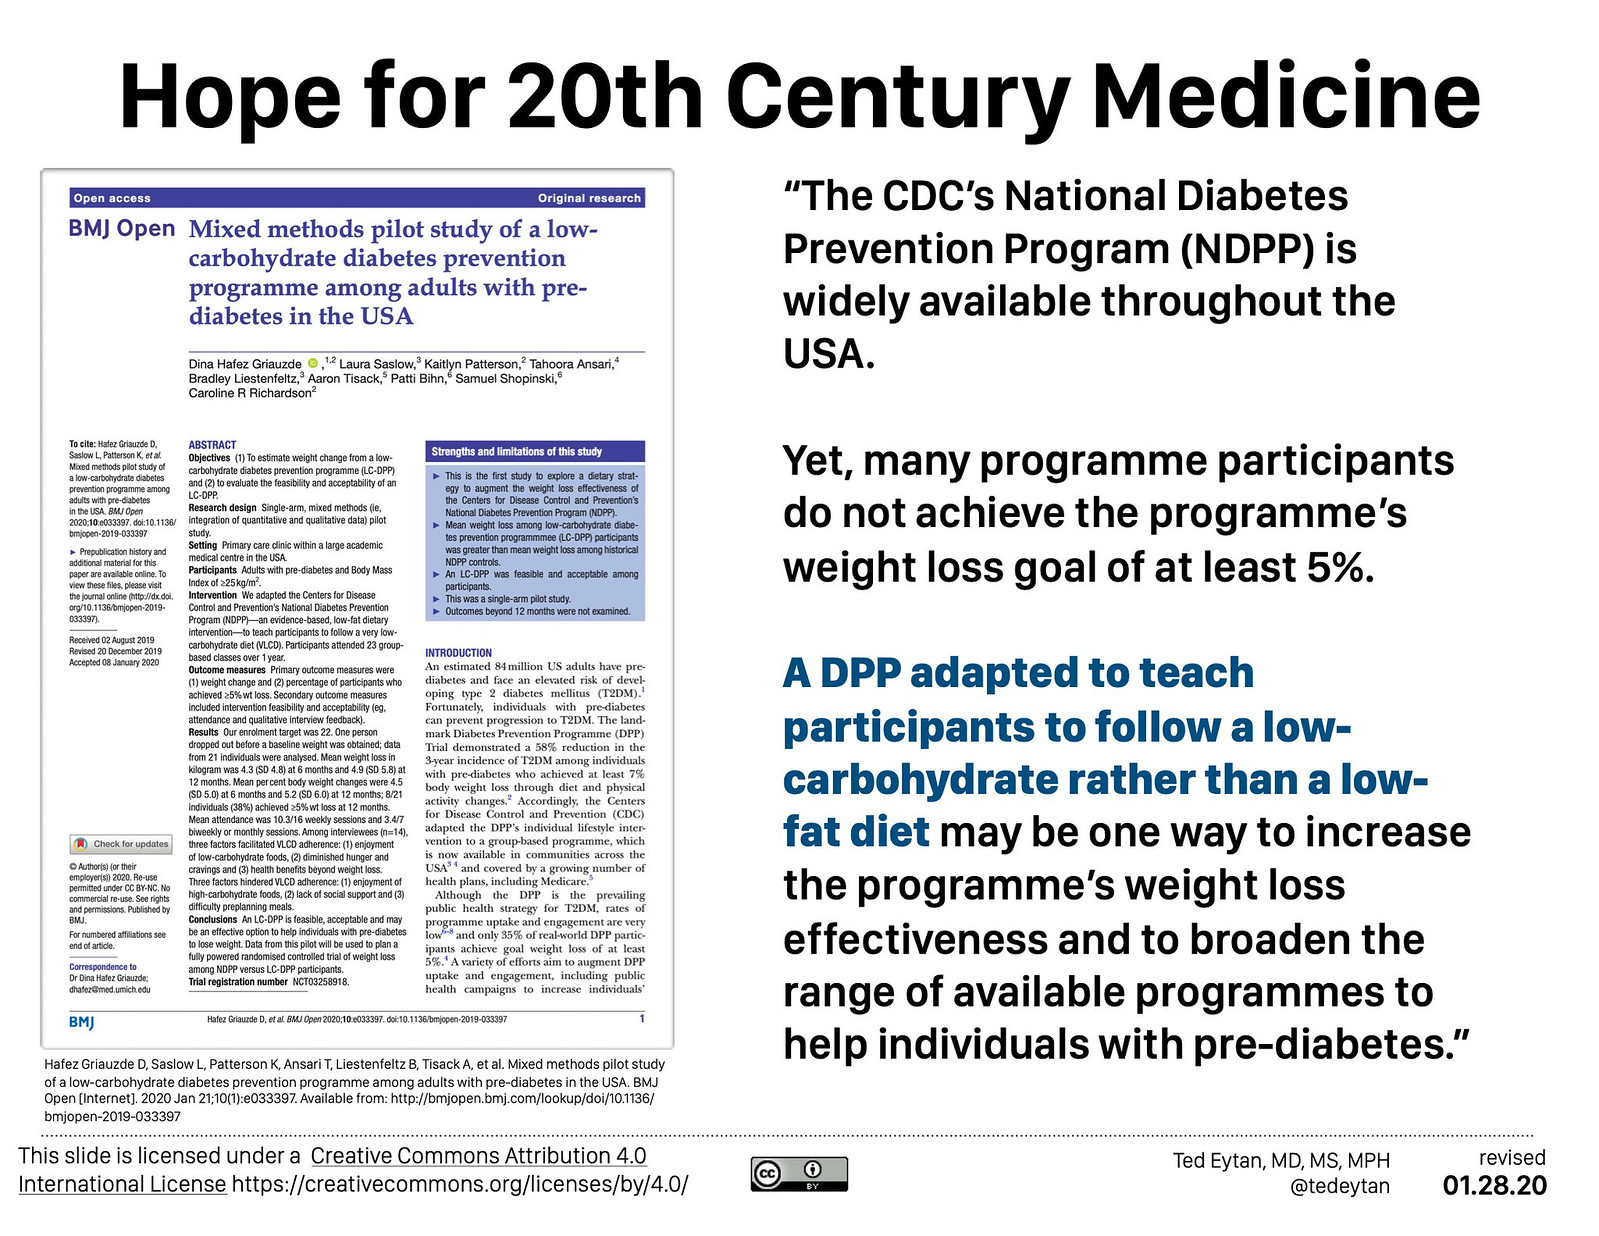 2018.05 Low Carb and Low Carbon - Ted Eytan MD-1001 868